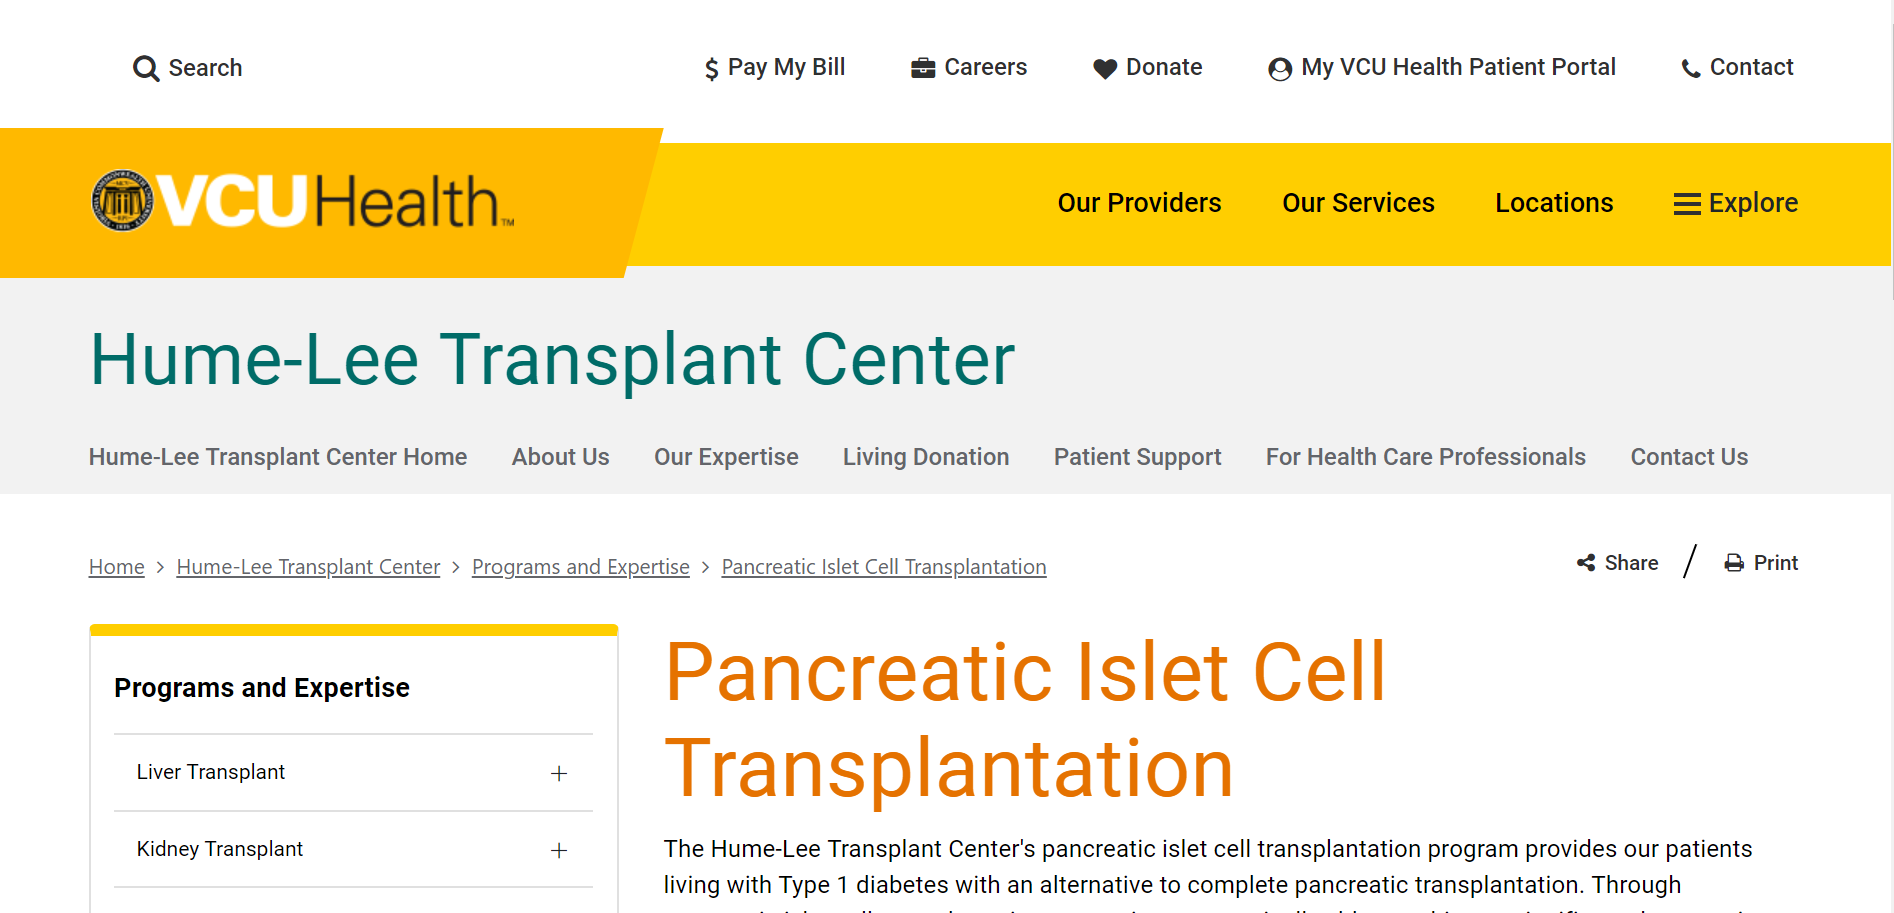 Virginia Commonwealth University Health, Hume-Lee Transplant Center, Pancreatic Islet Cell Transplantation